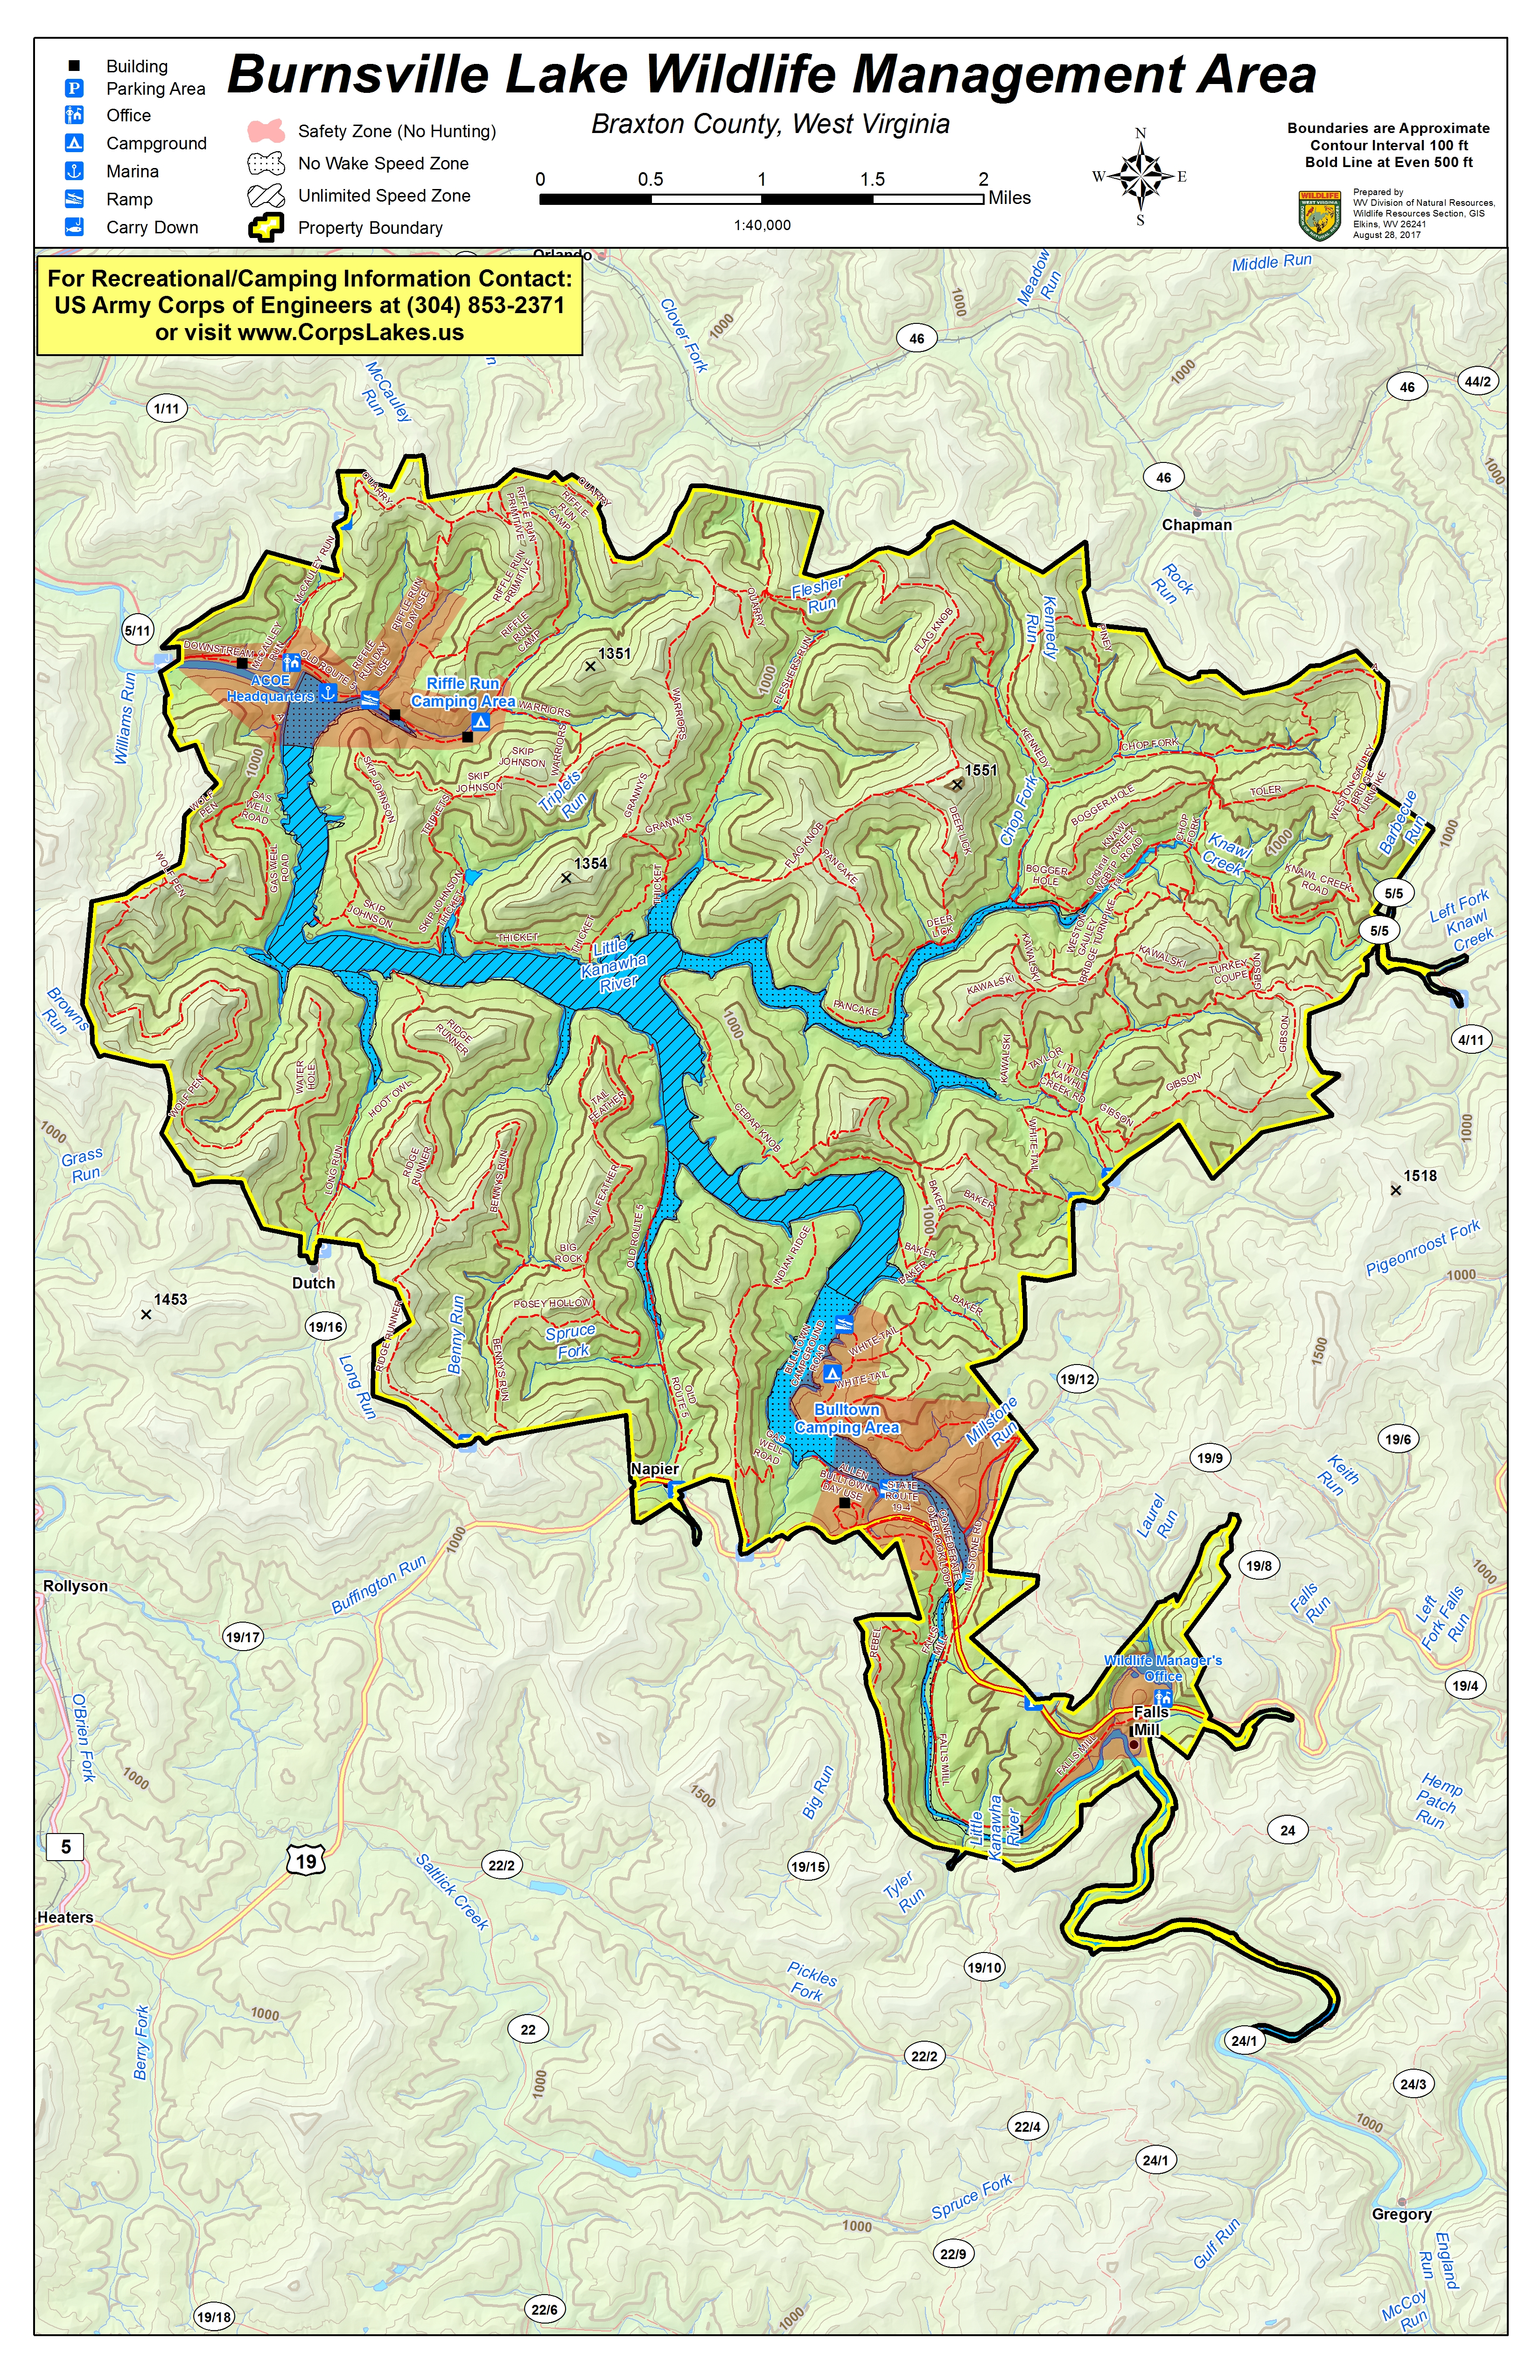 West Virginia DNR WMA Map Project - Dnr topo maps